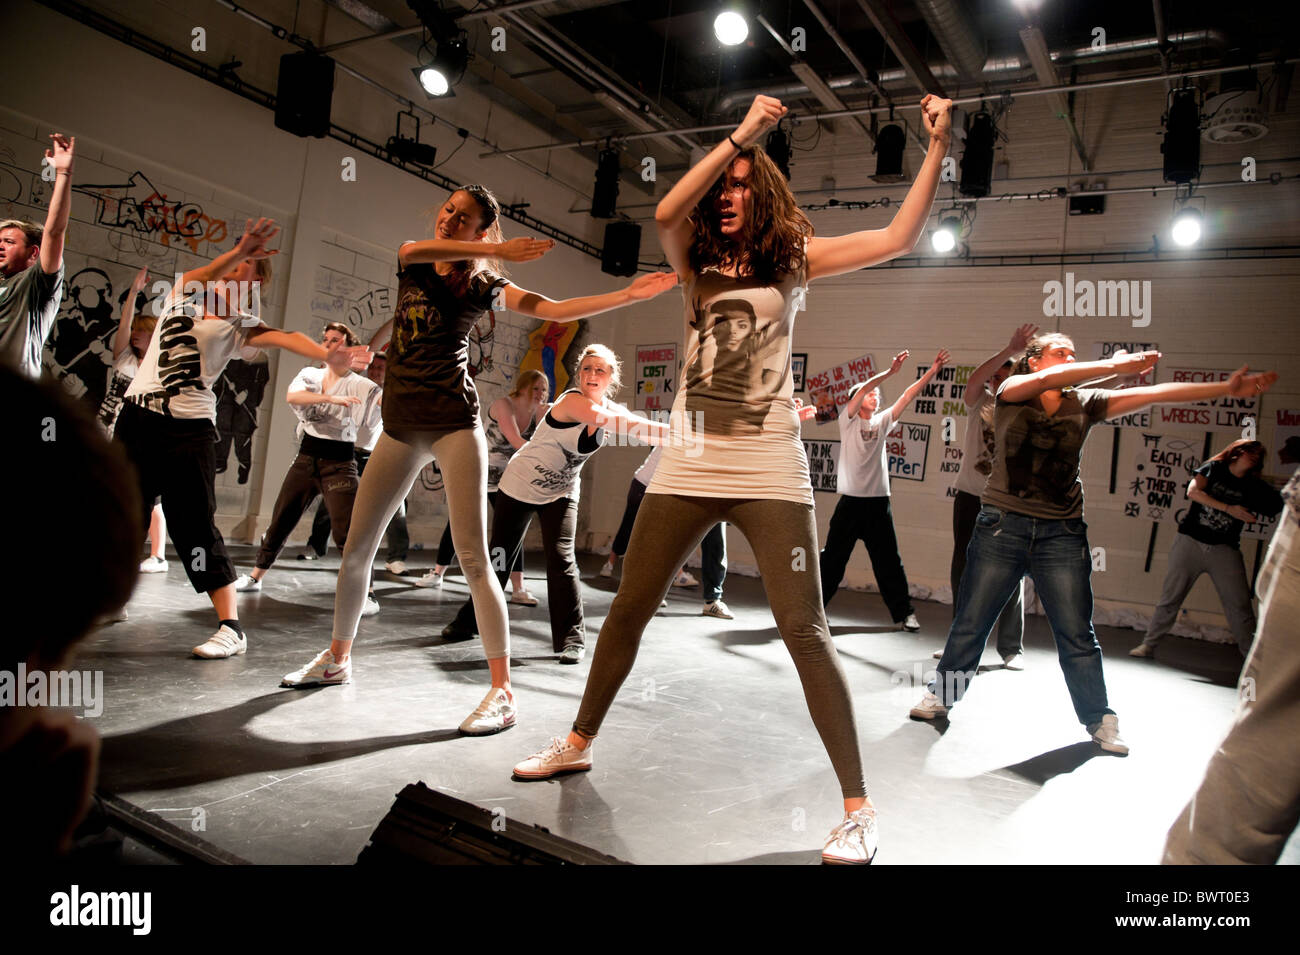 Drama and Theatre studies students Aberystwyth University performing agit-prop devised performance, UK - Stock Image